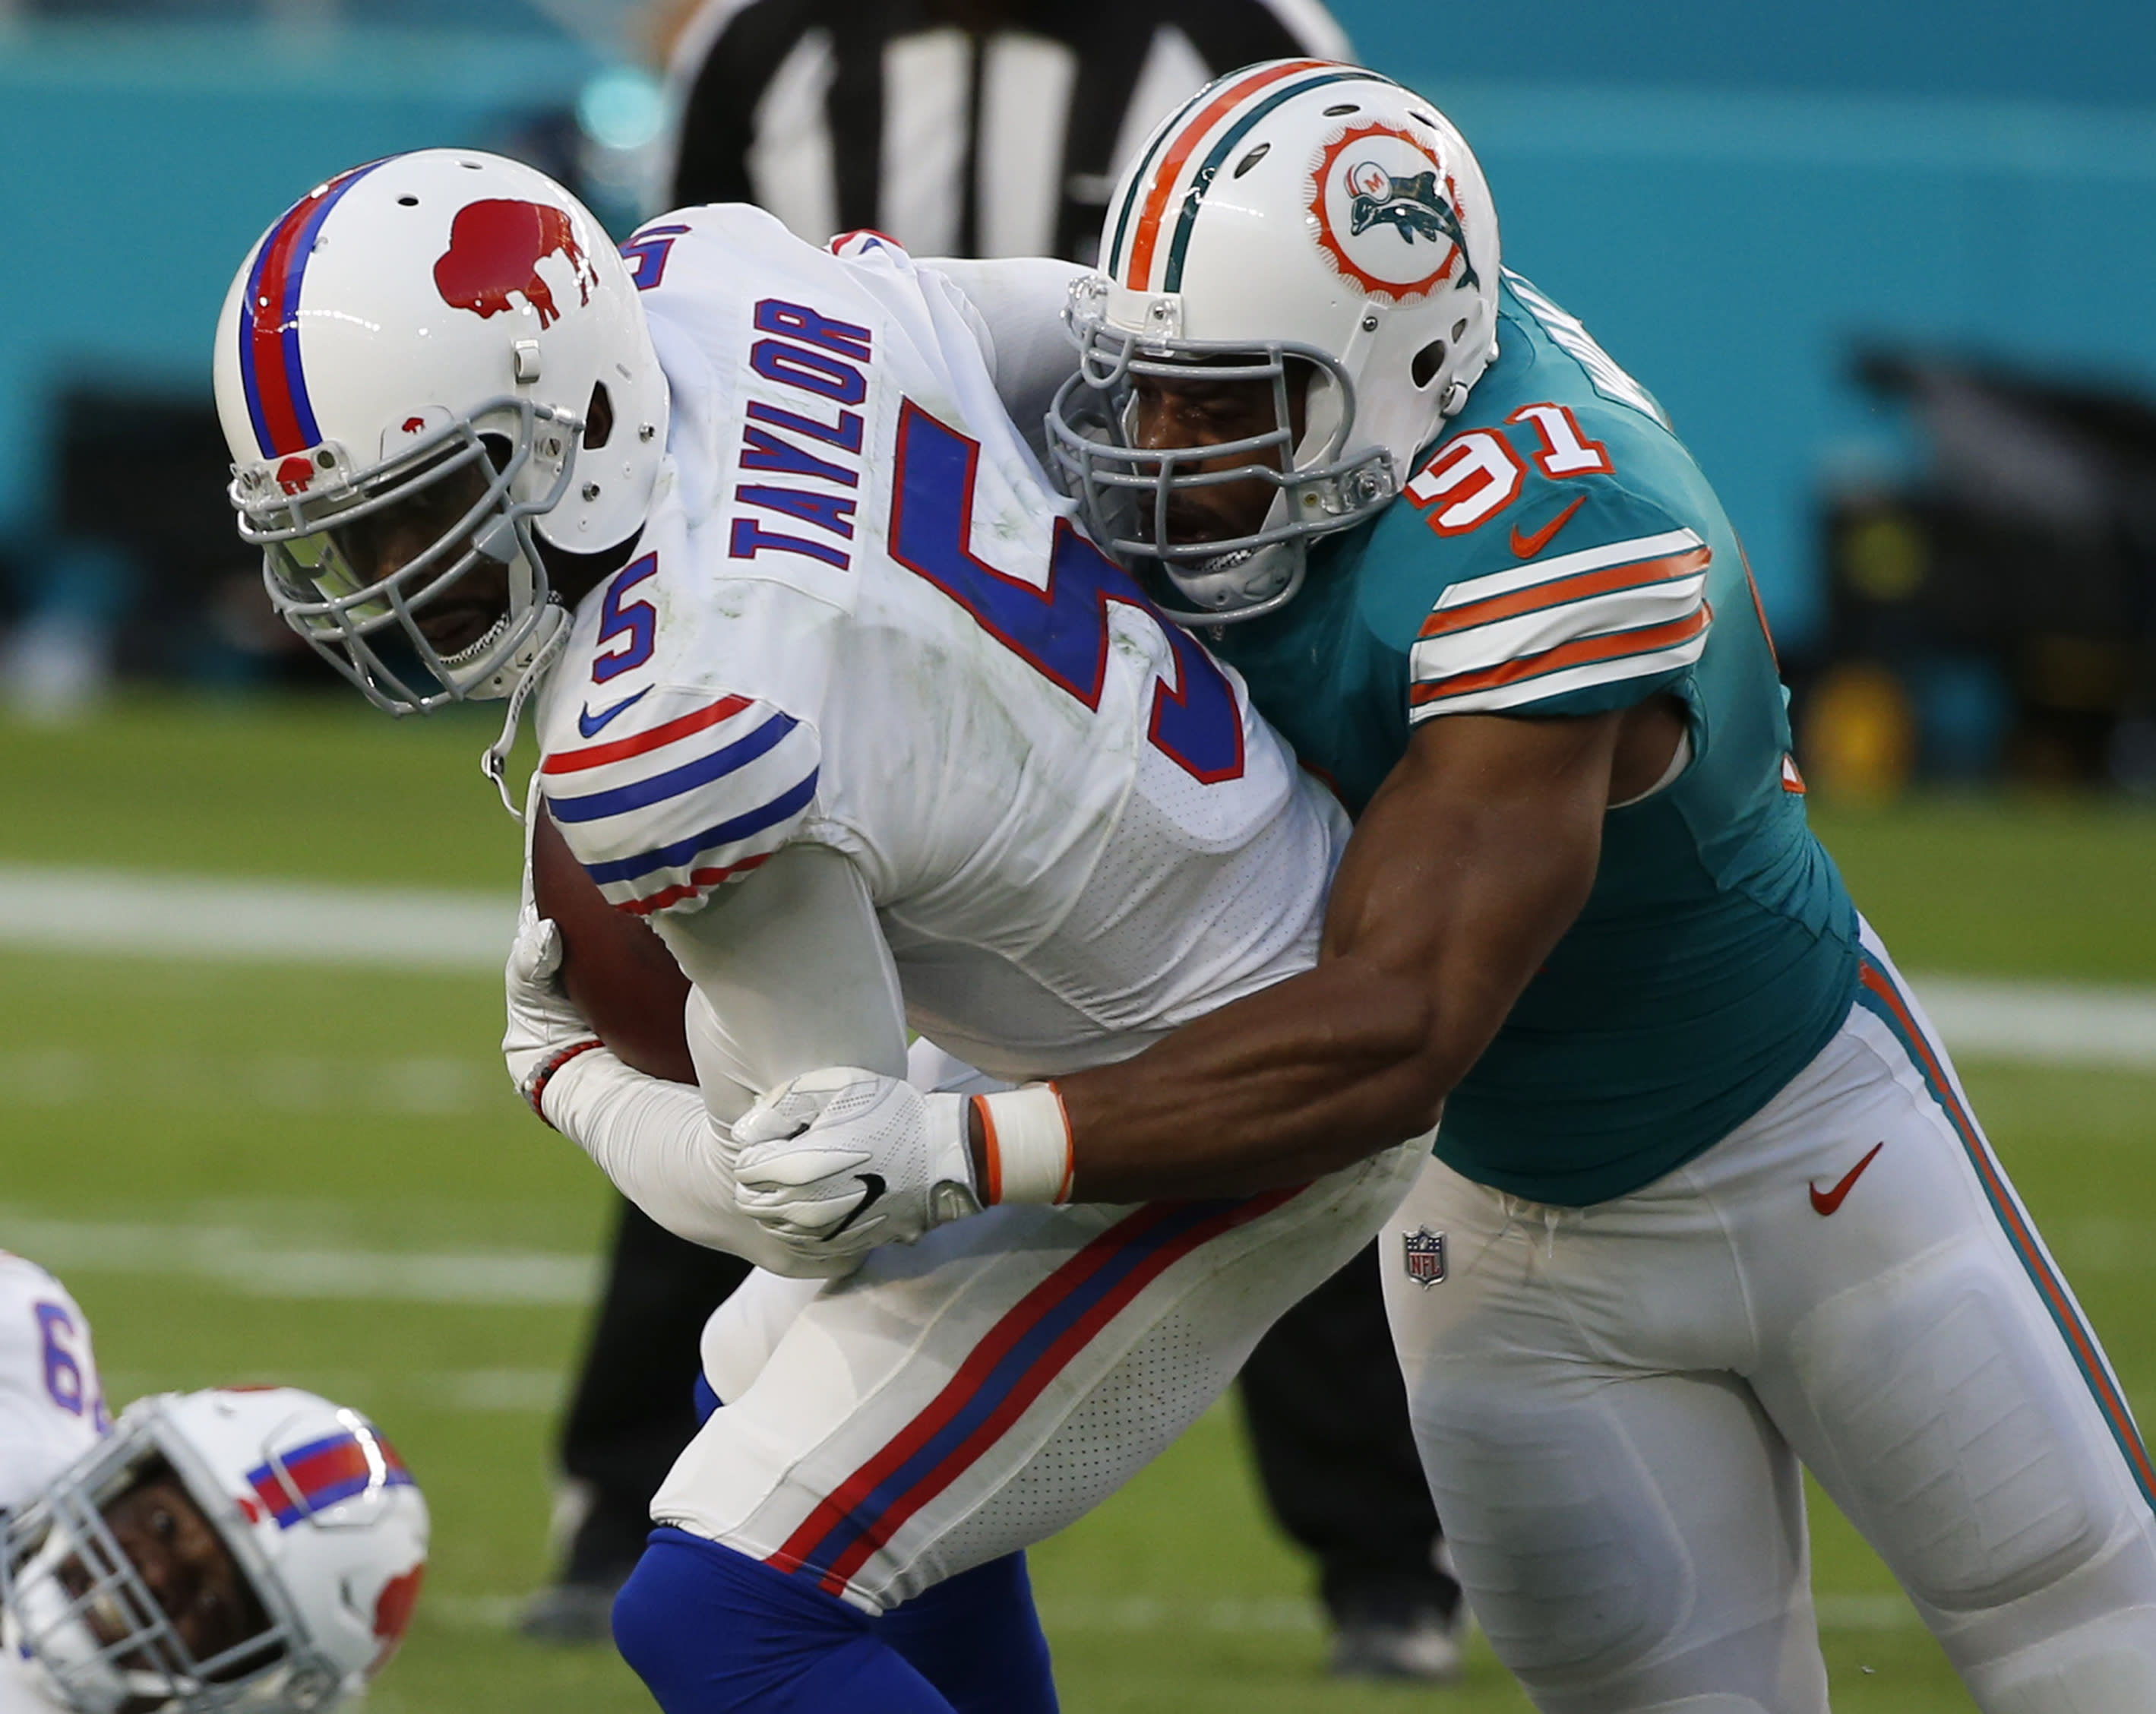 Miamis Cam Wake Thinks Nfl Only Looking Out For Qb Safety